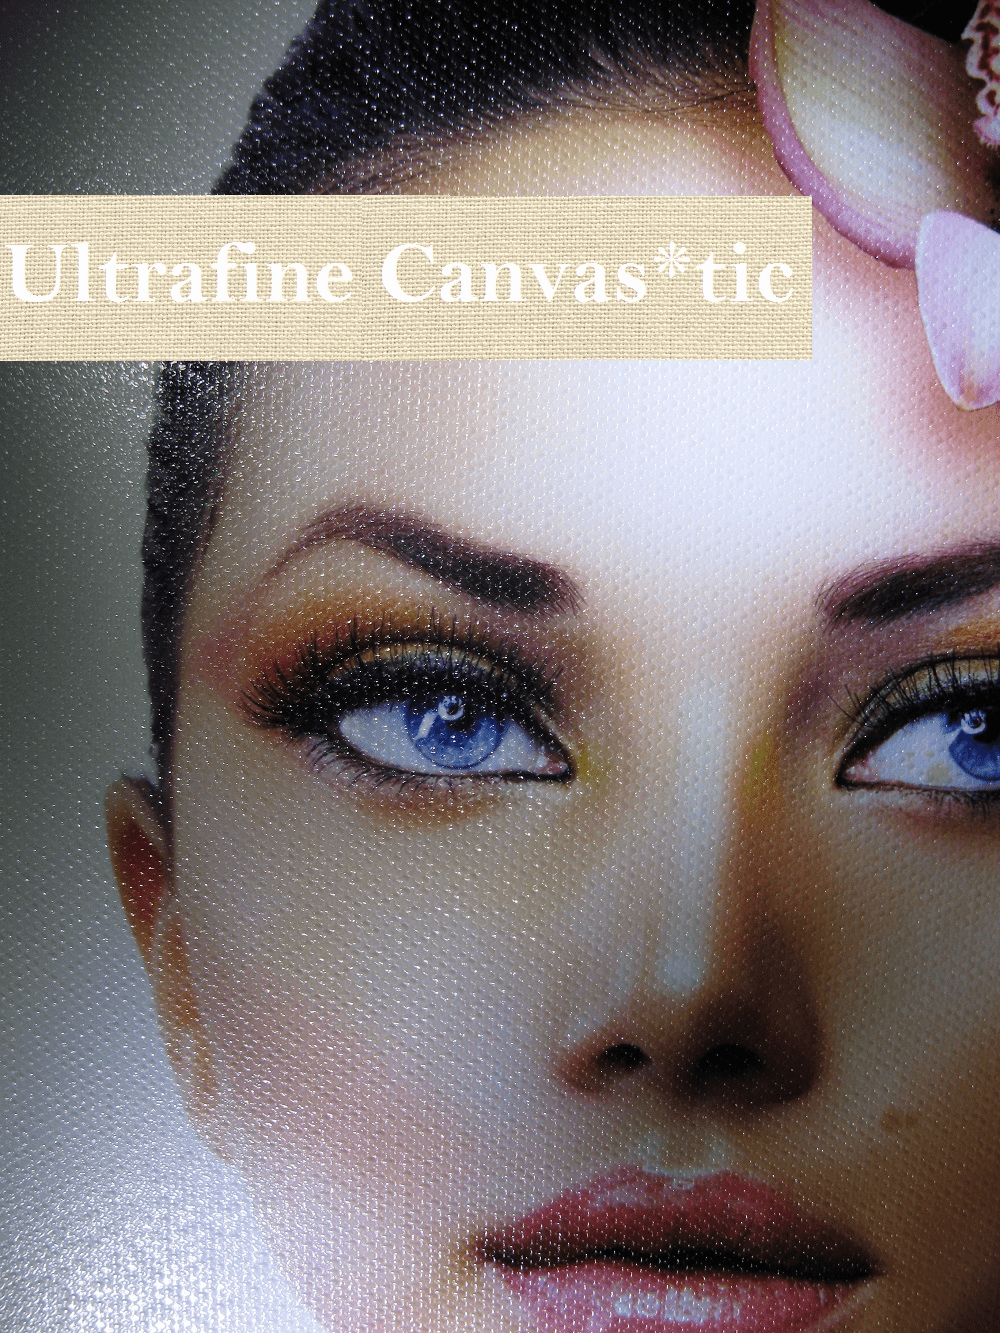 "Ultrafine Canvas*tic Canvas Textured Matte Fabric Photo Inkjet 19 Mil 24"" x 75' Roll"